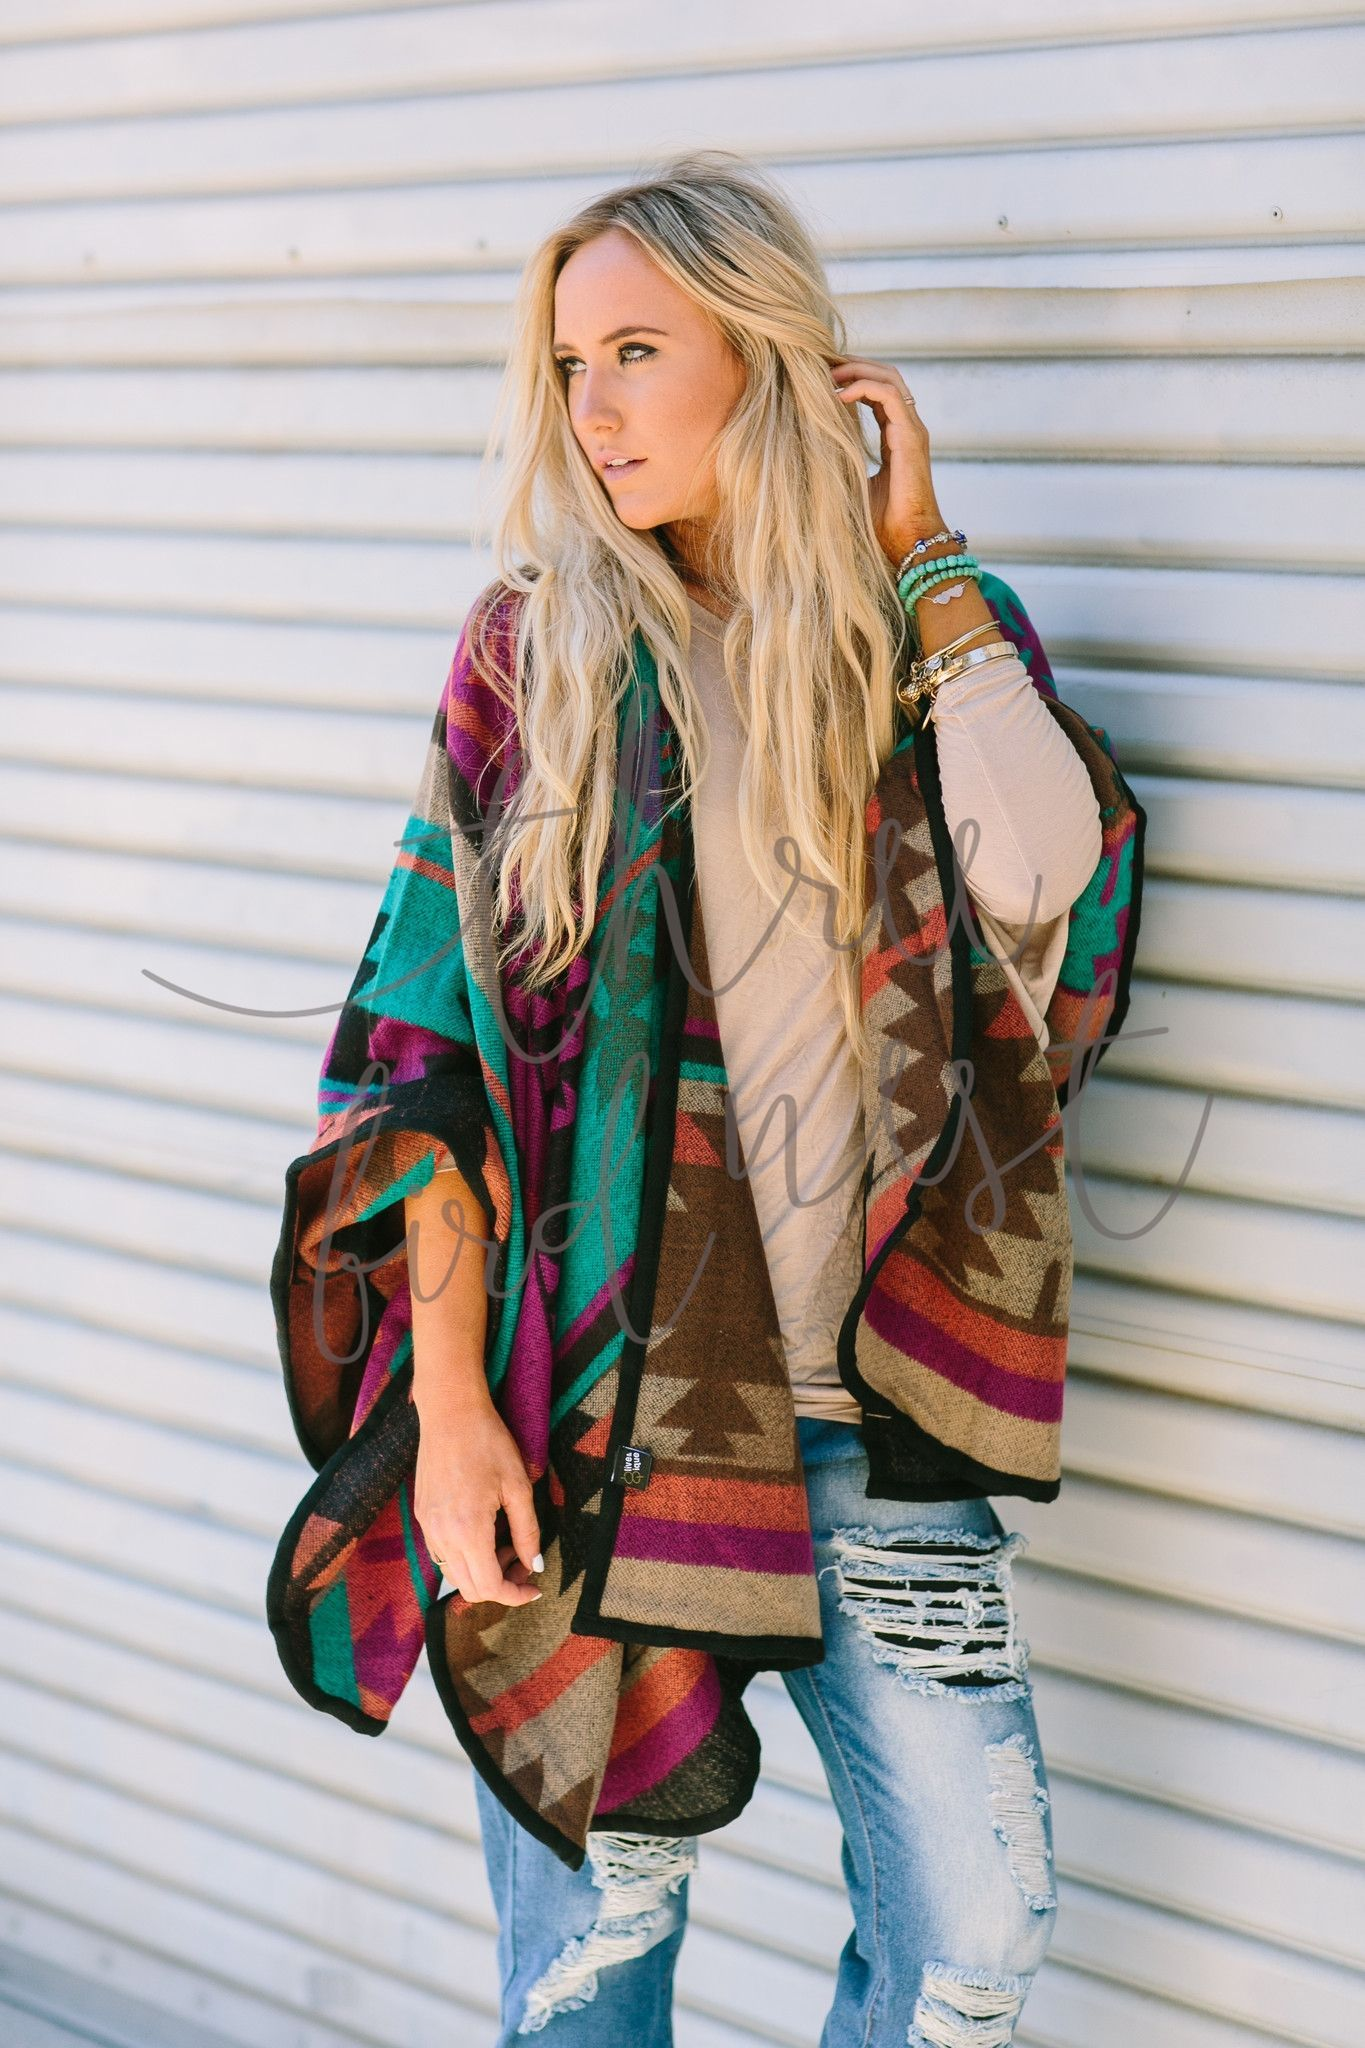 Women's Clothing, Free-Spirited Boho Outfits, Bohemian Clothes